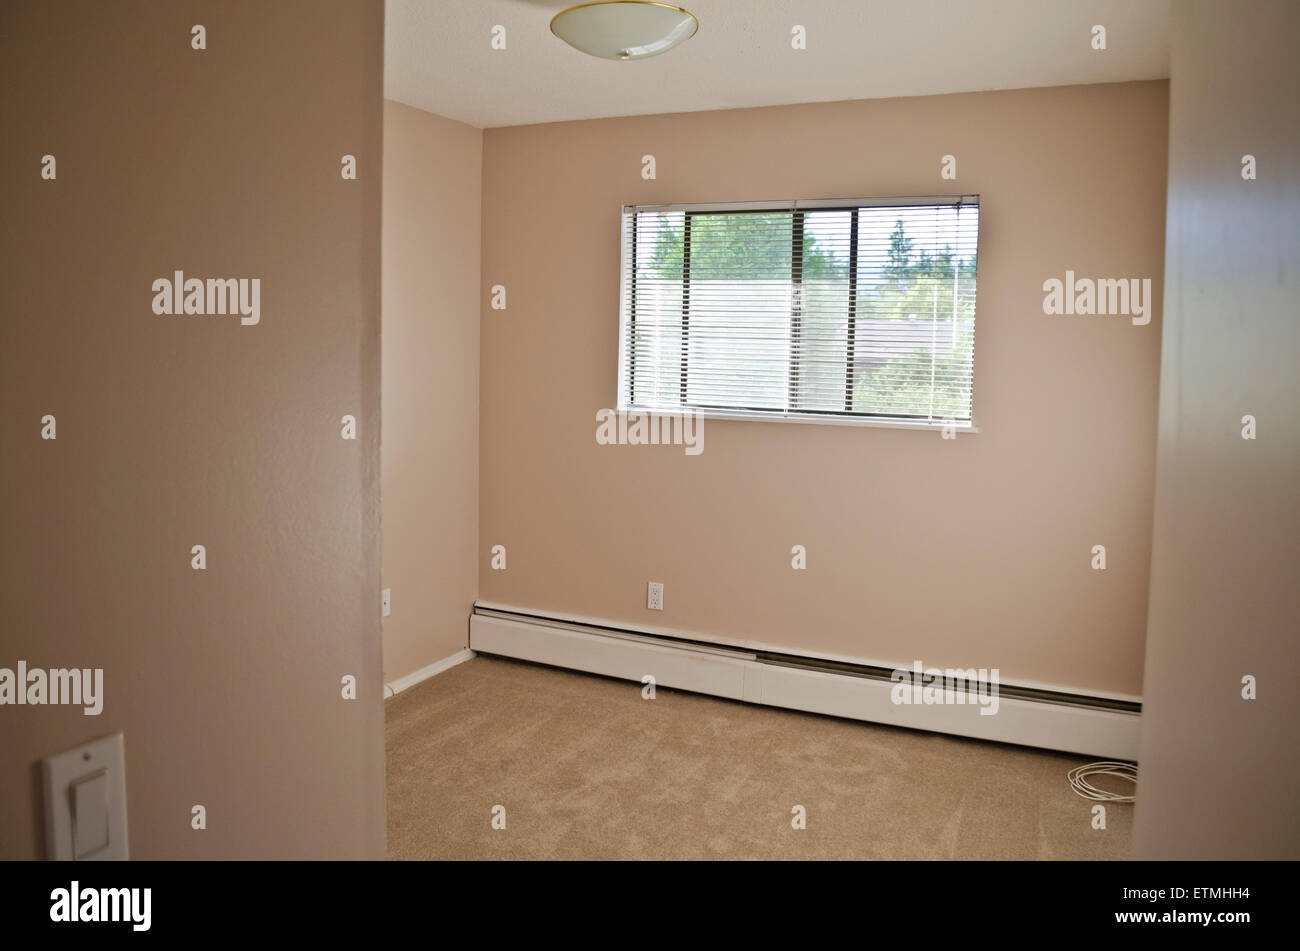 Small Empty Bedroom In A Low Rise Apartment Building In Greater